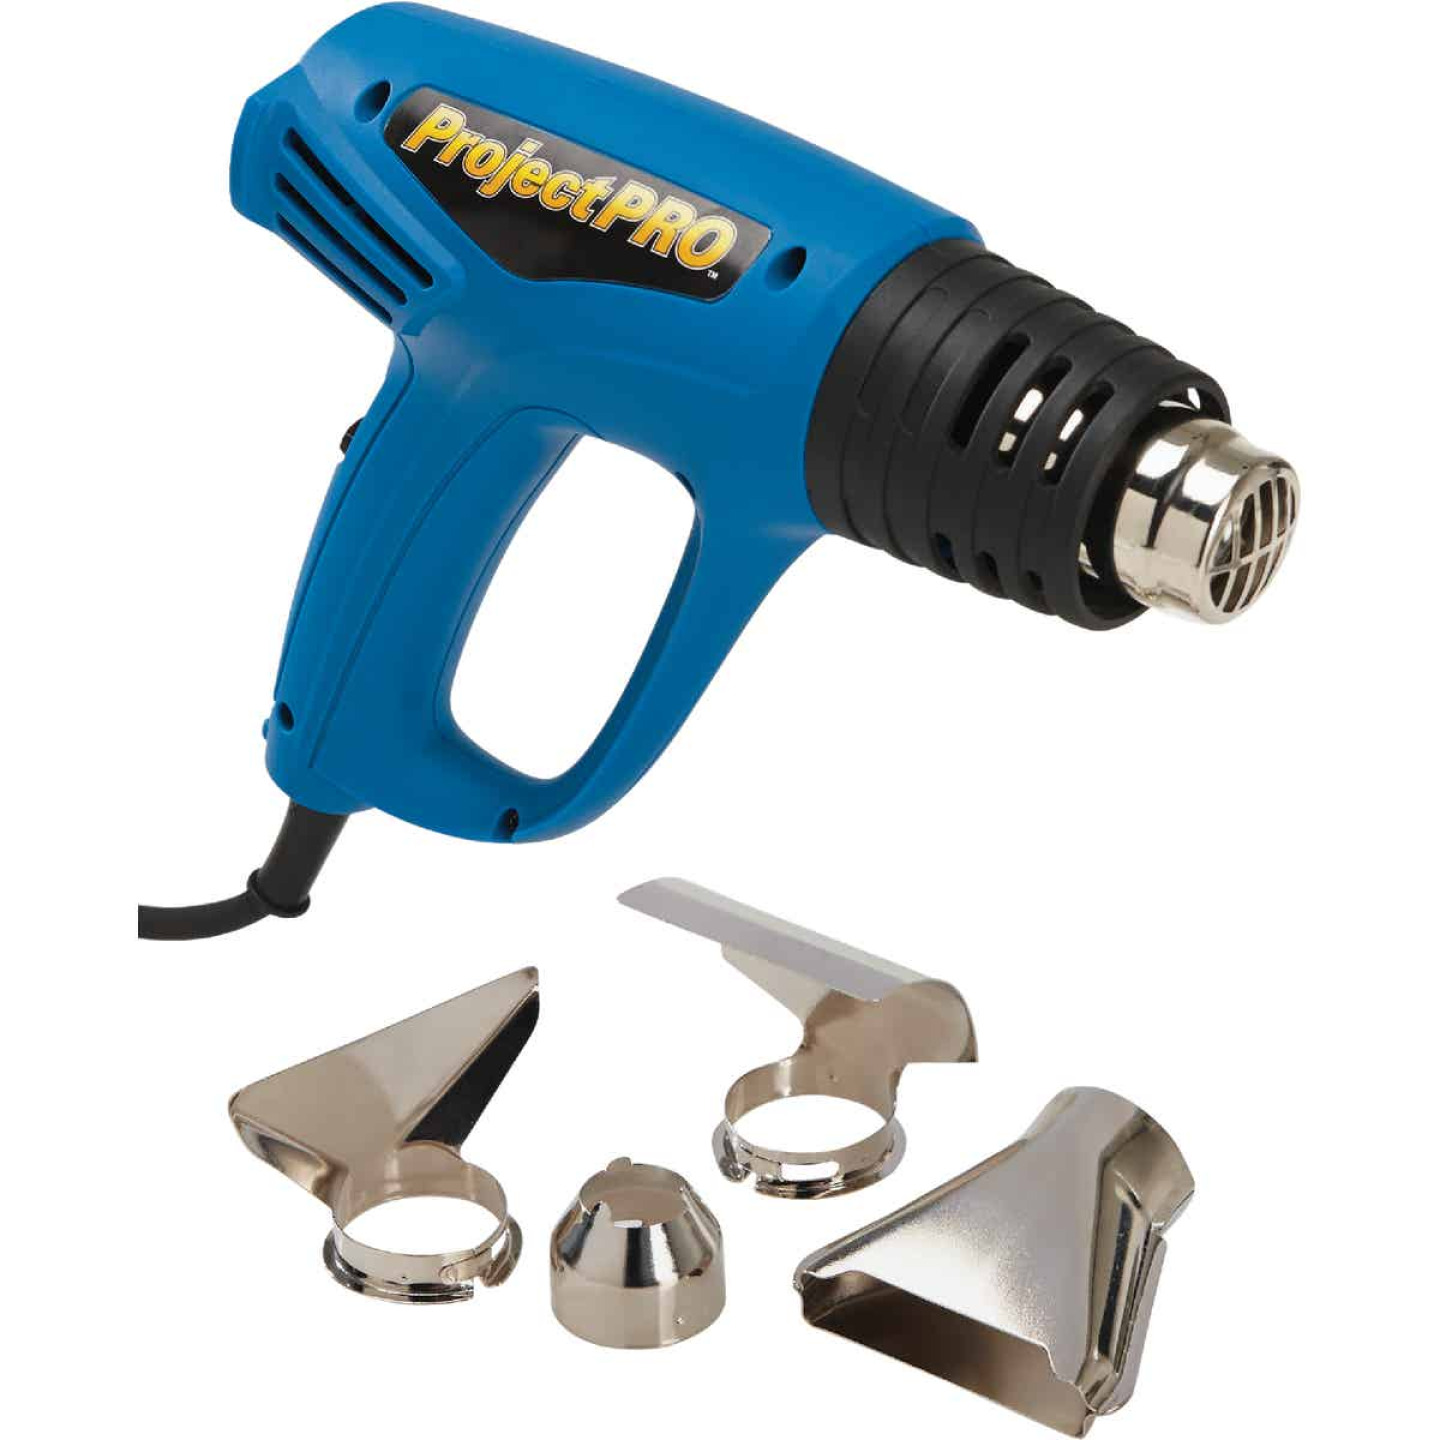 Project Pro 1000W to 1600W 6.56 Ft. Heat Gun Image 1